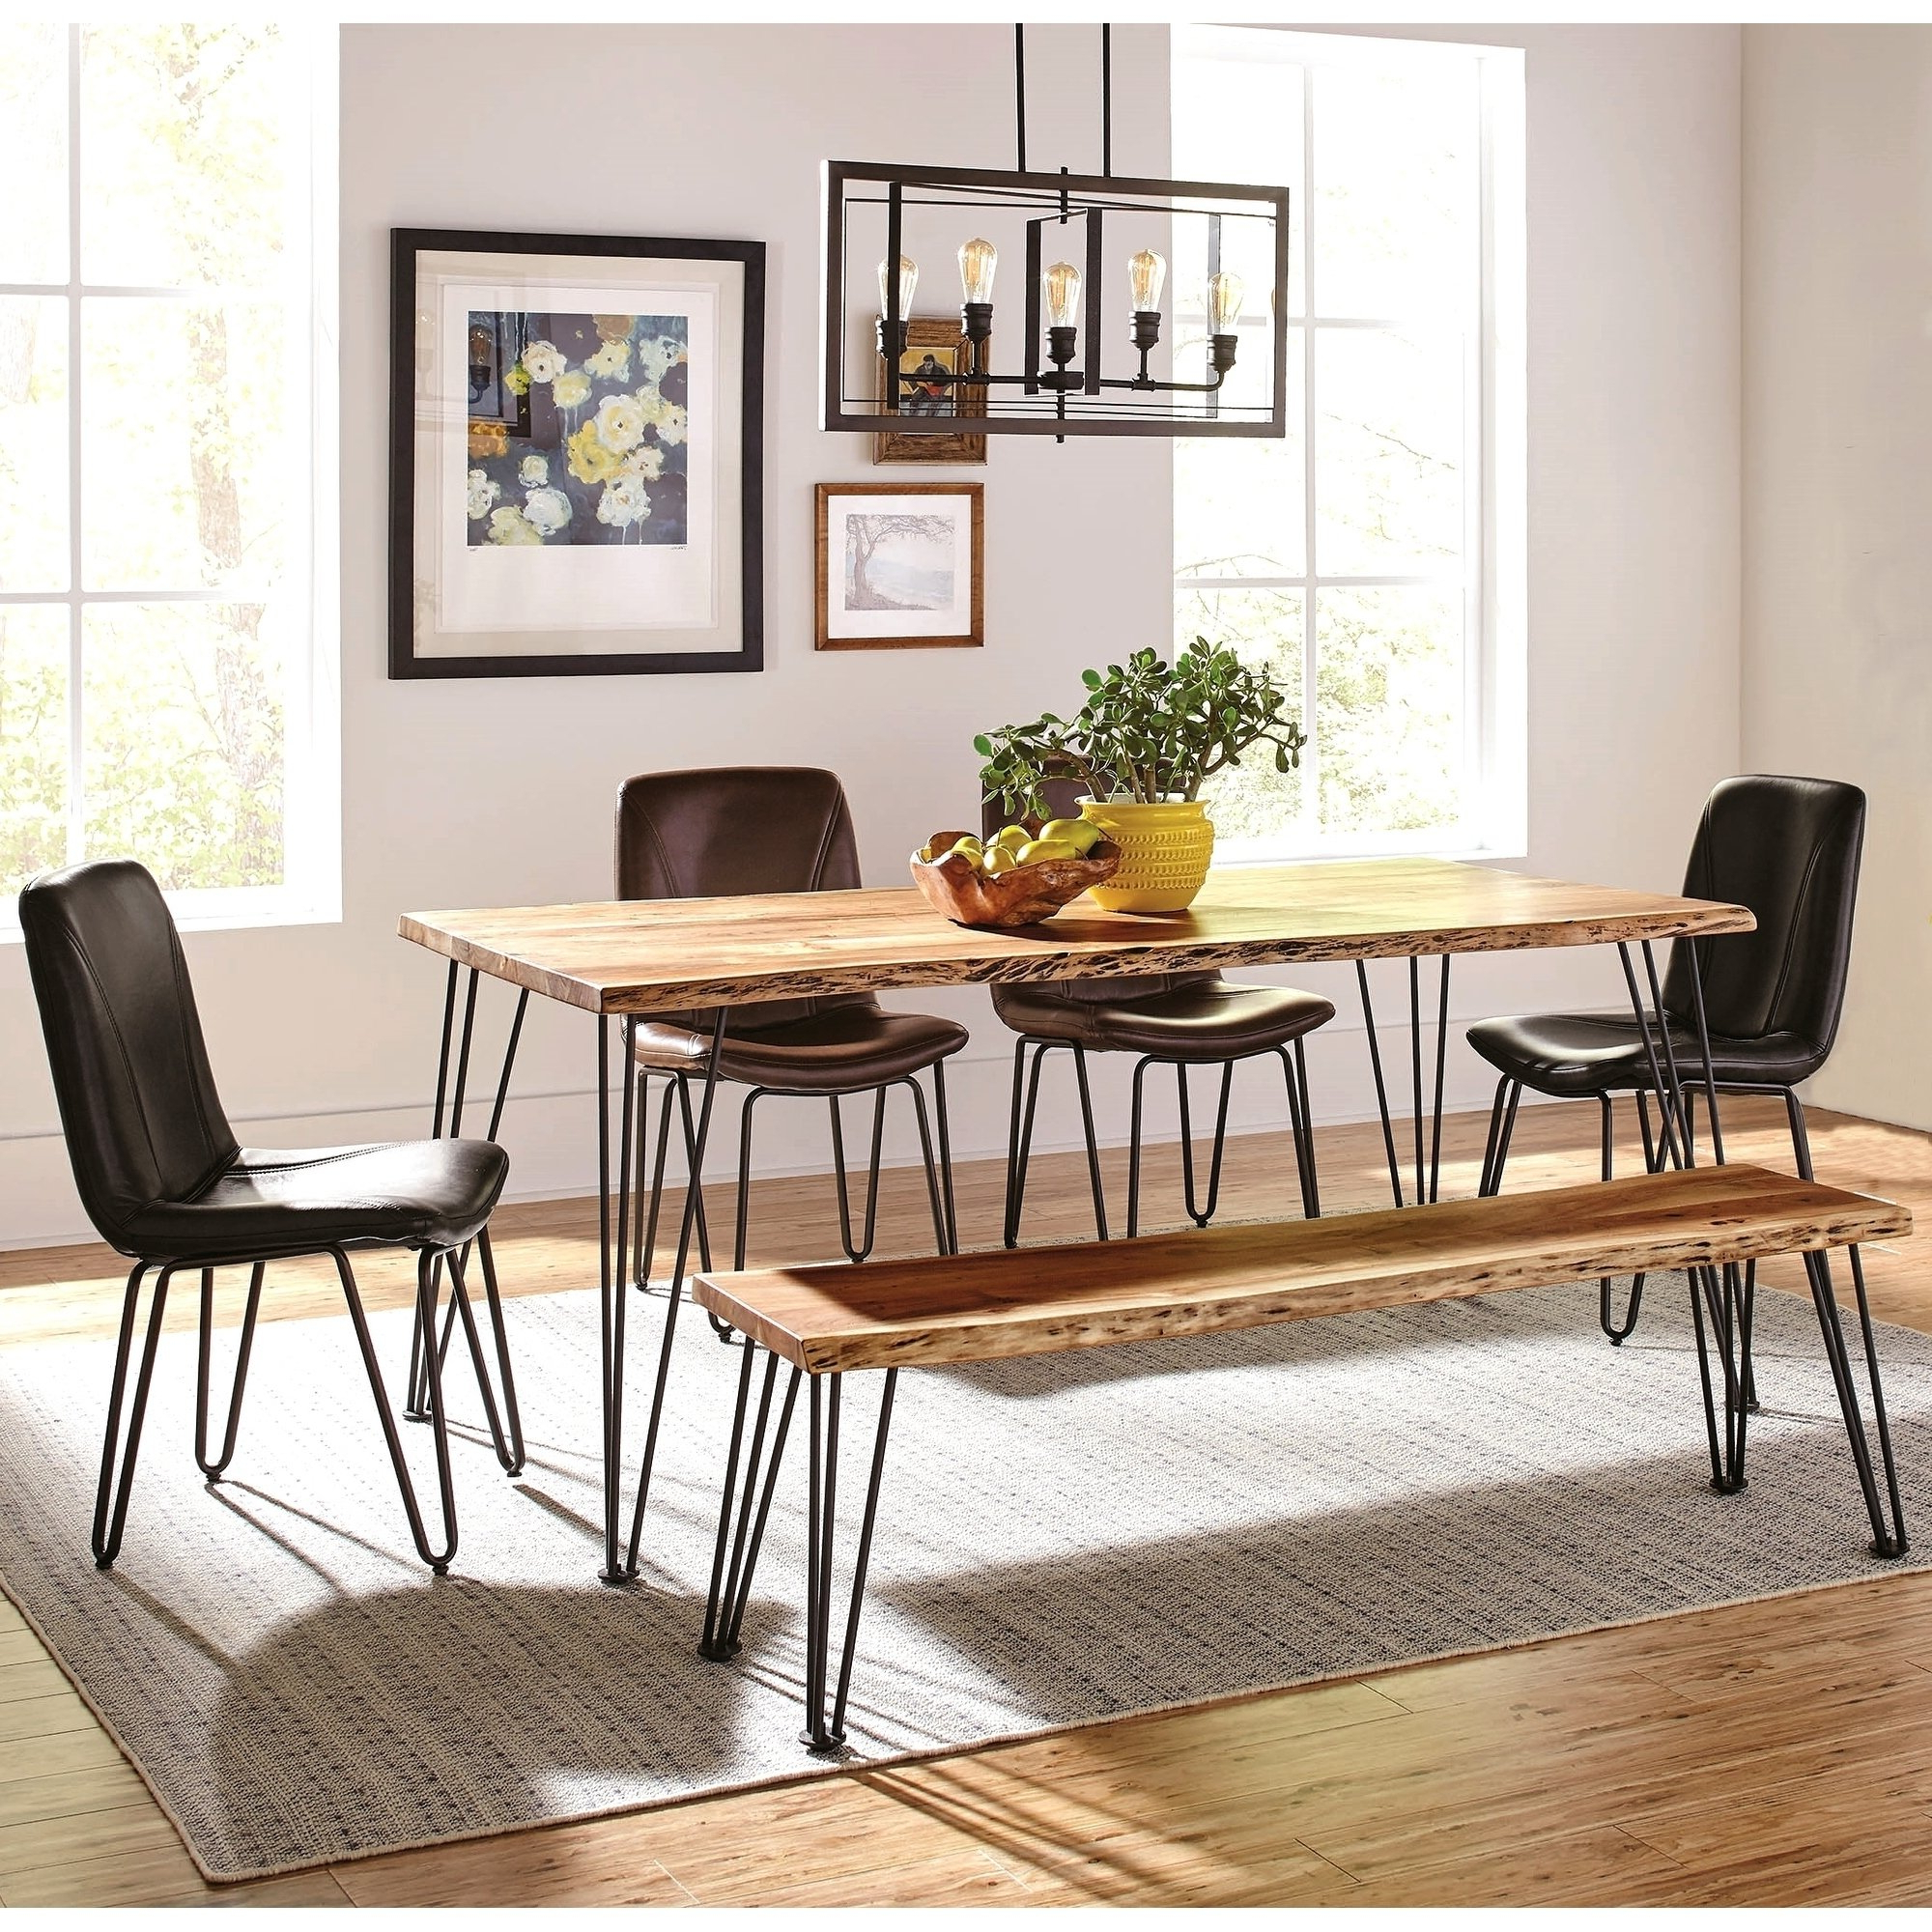 Most Current Rustic Mid Century Modern 6 Seating Dining Tables In White And Natural Wood For Natural Acacia Solid Wood Live Edge With Metal Legs Dining (View 13 of 30)